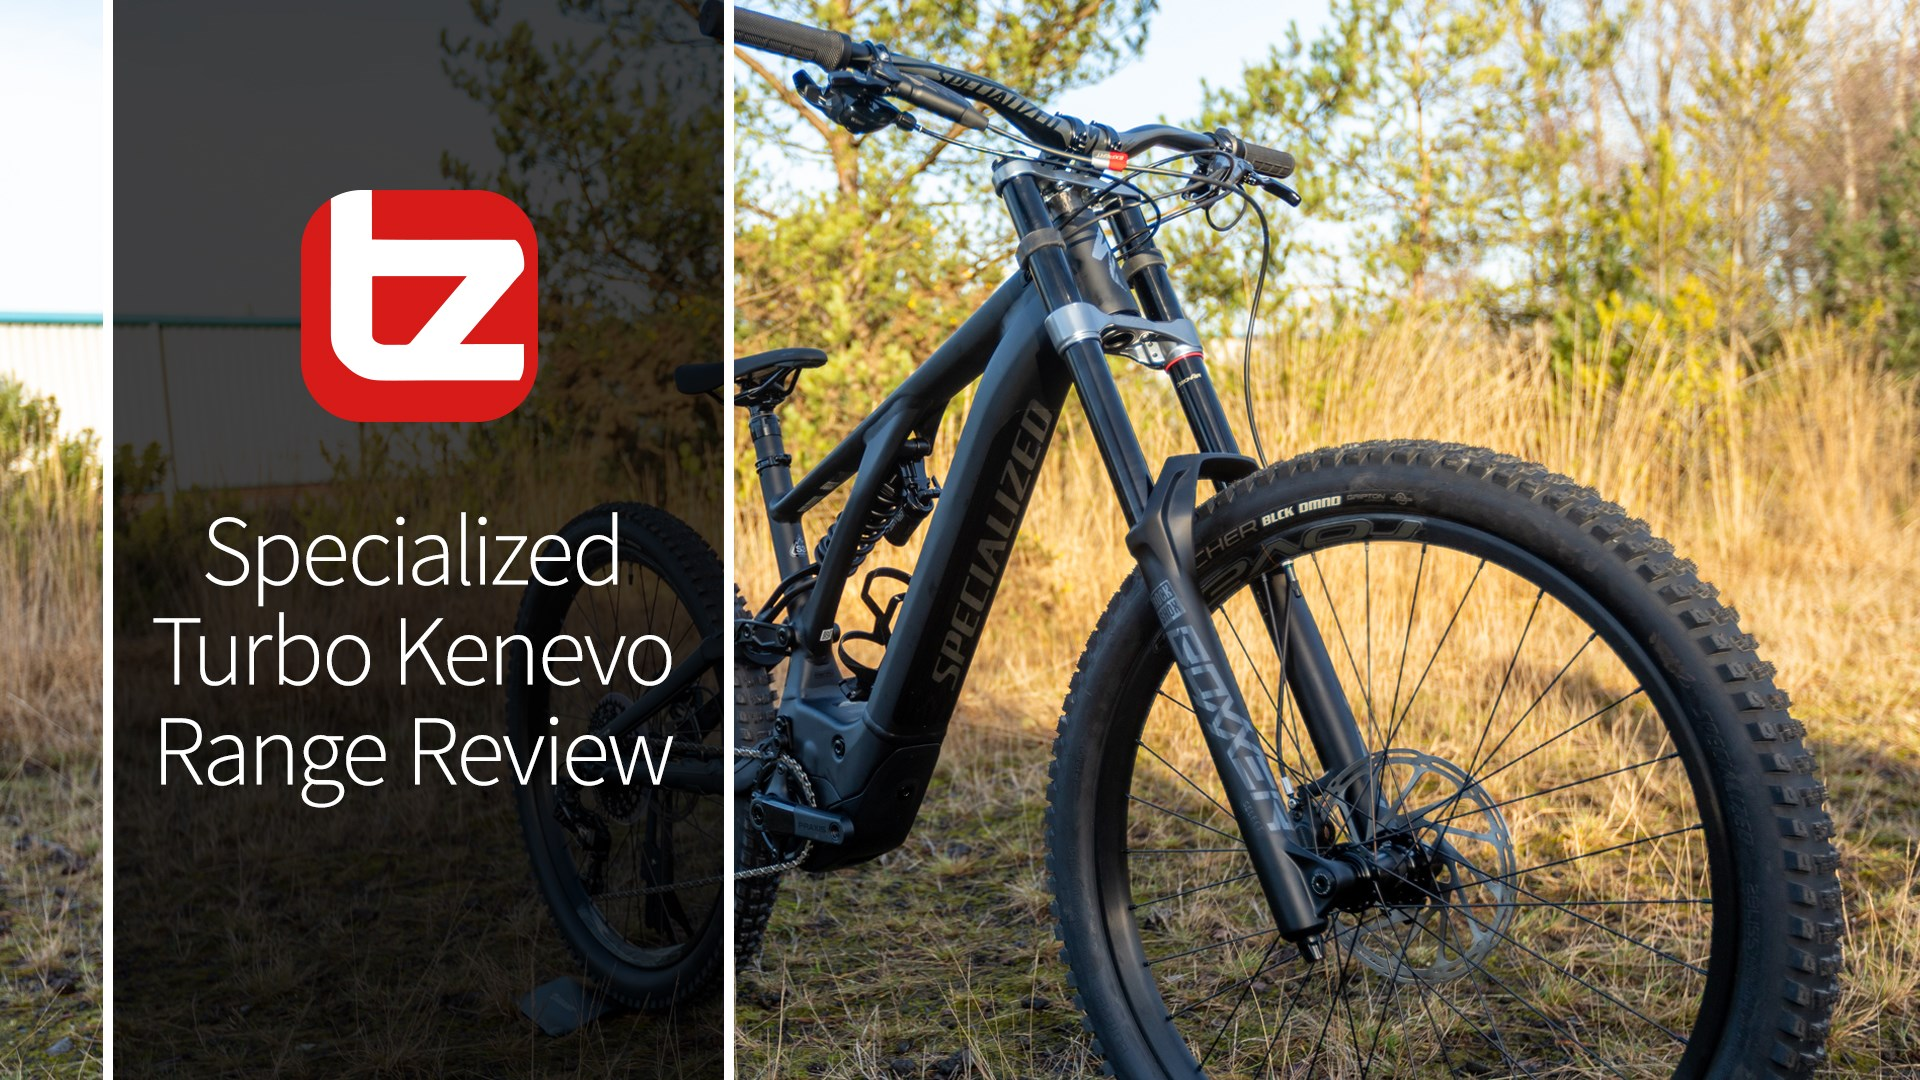 Specialized Turbo Kenevo | Range Review | Tredz Bikes